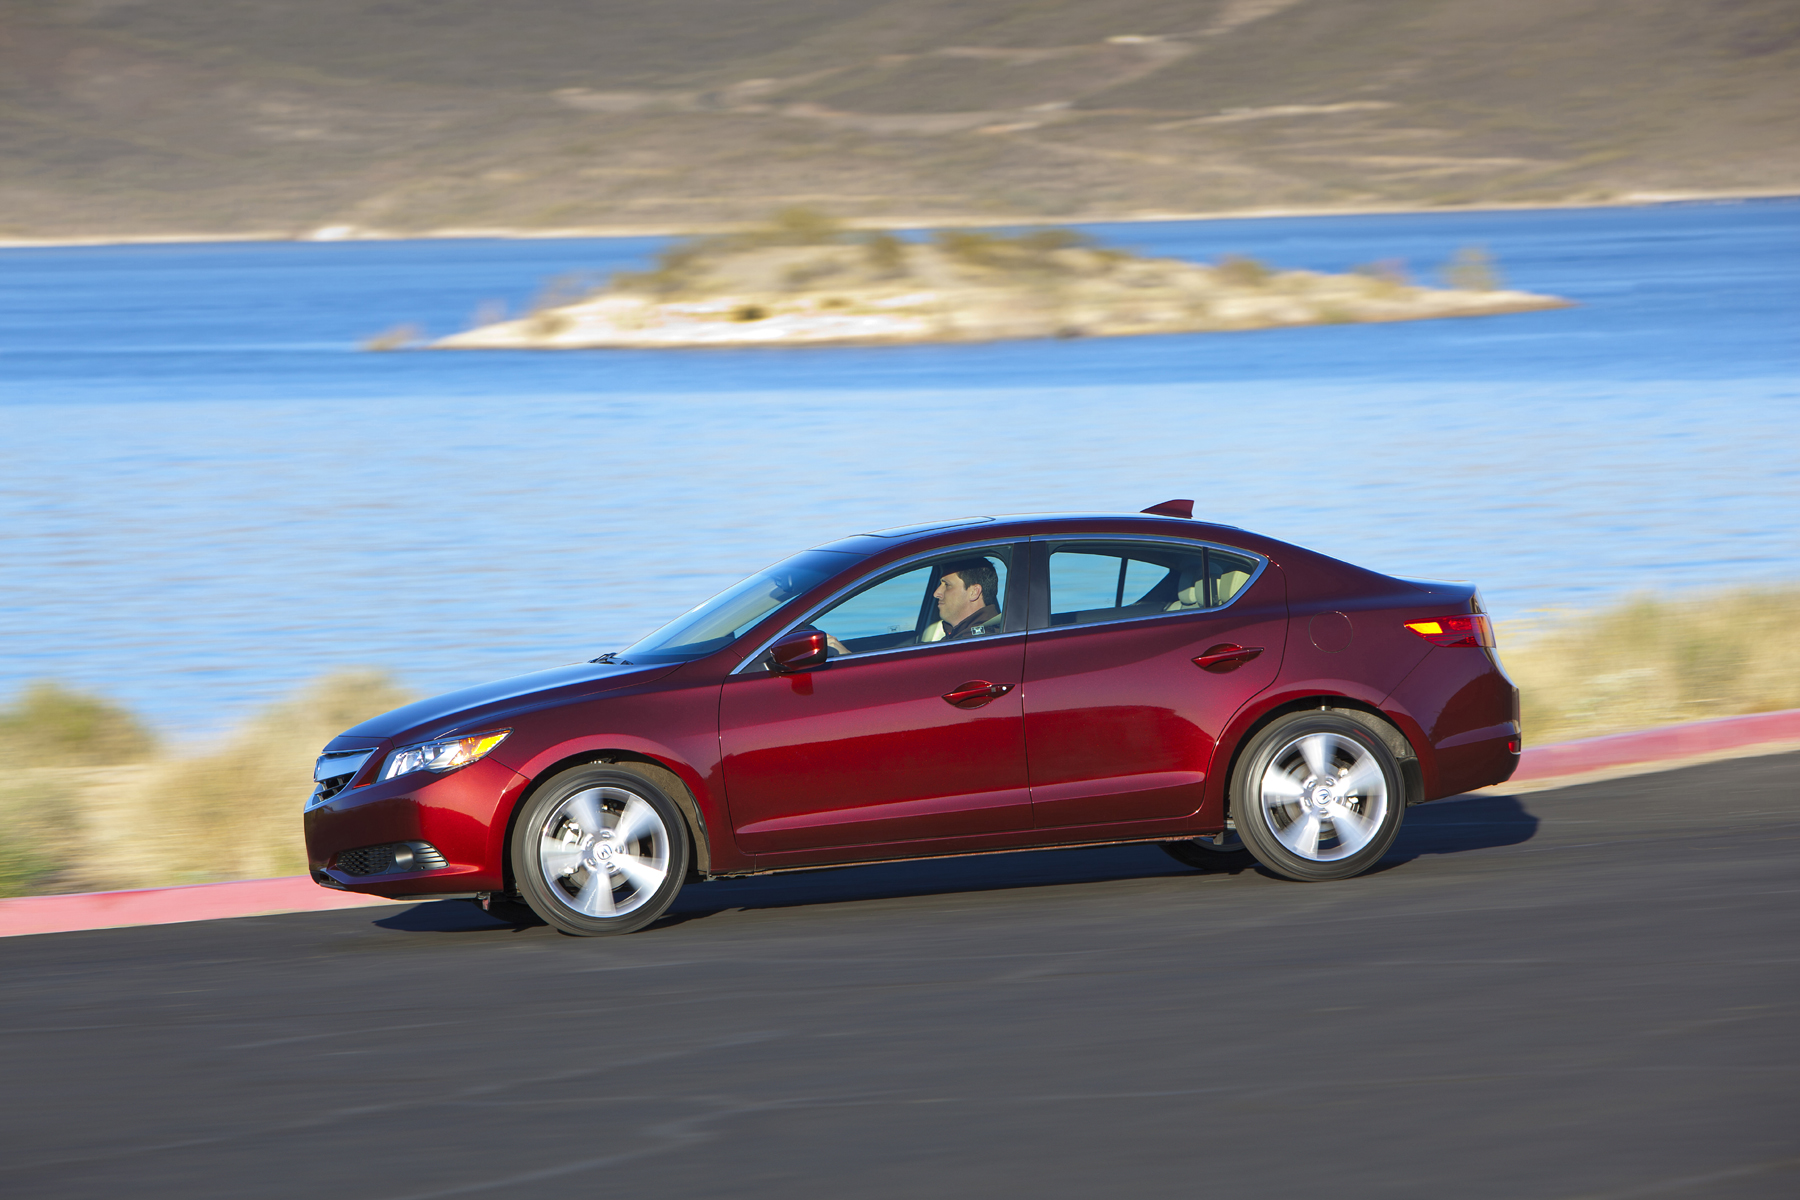 2013 acura ilx designed for the starter buyer new on wheels groovecar. Black Bedroom Furniture Sets. Home Design Ideas